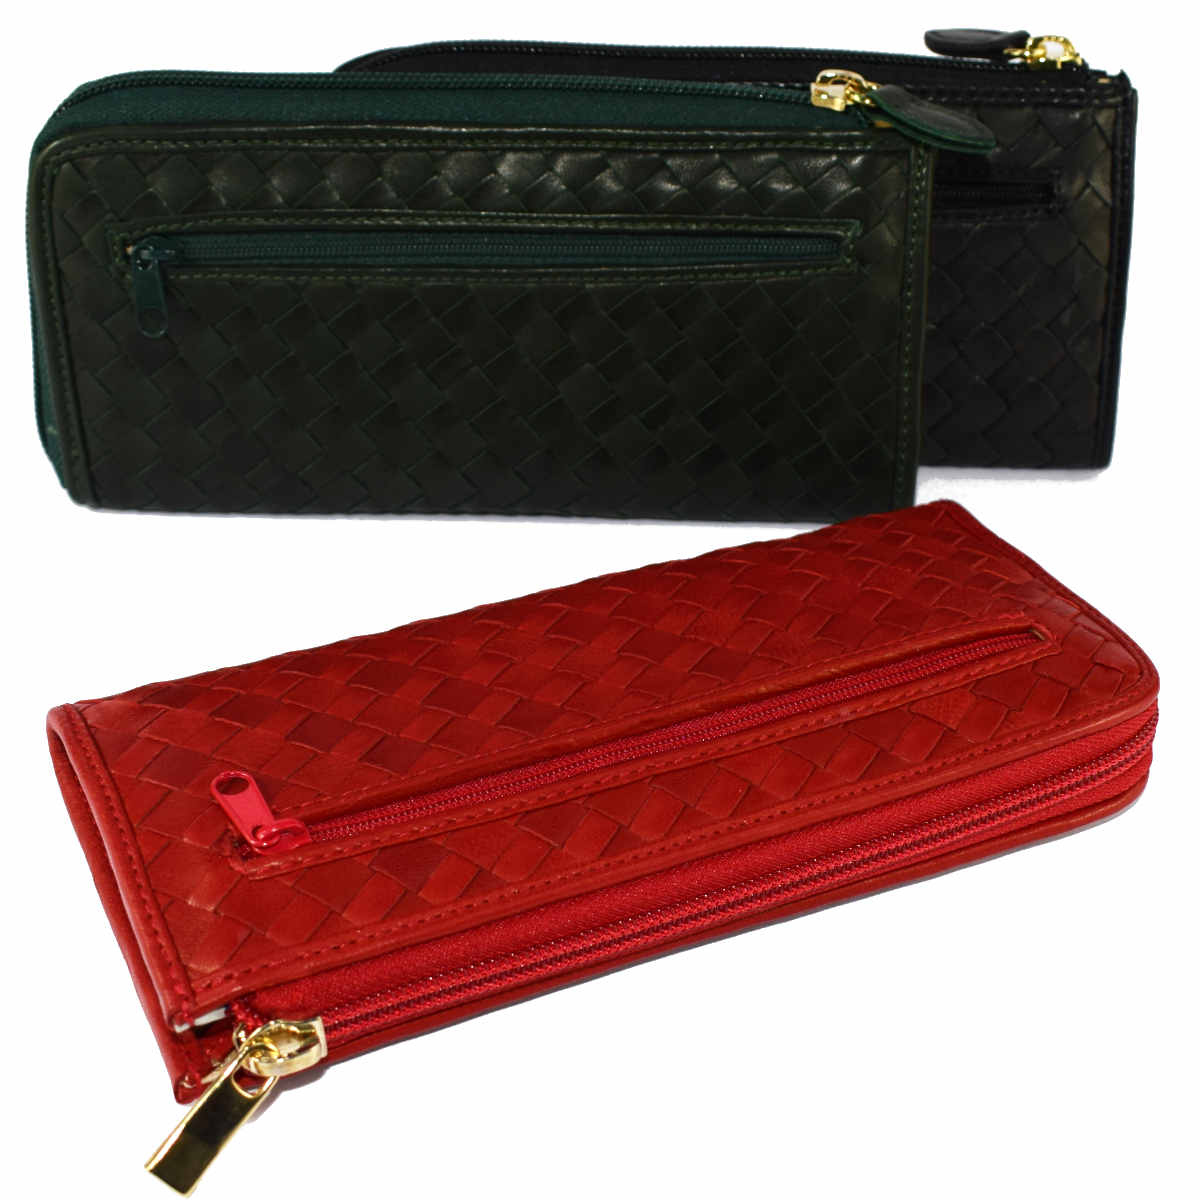 1687 WOVEN WALLET by Bottega Fiorentina